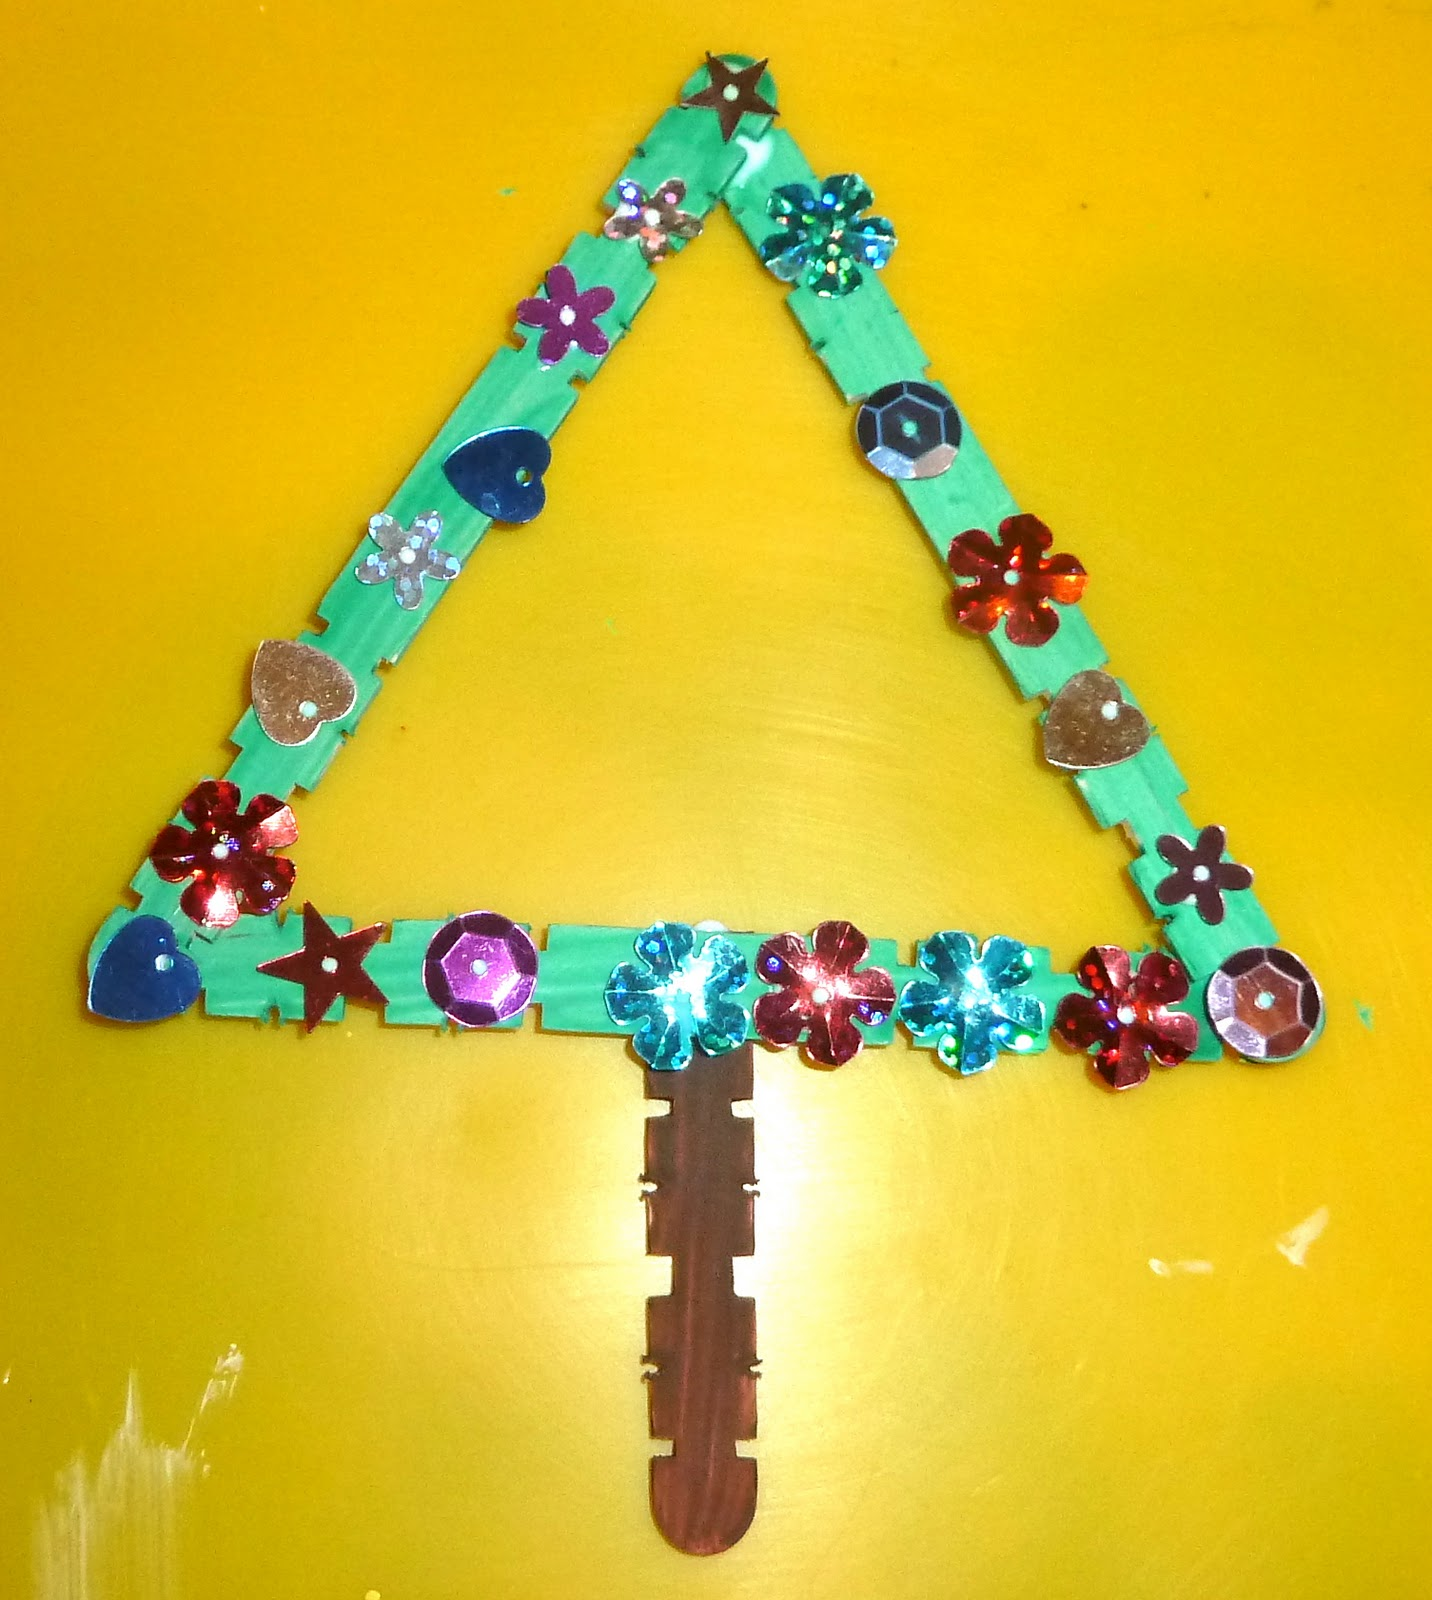 Mom To 2 Posh Lil Divas 5 Homemade Craft Stick Christmas Ornaments For Kids